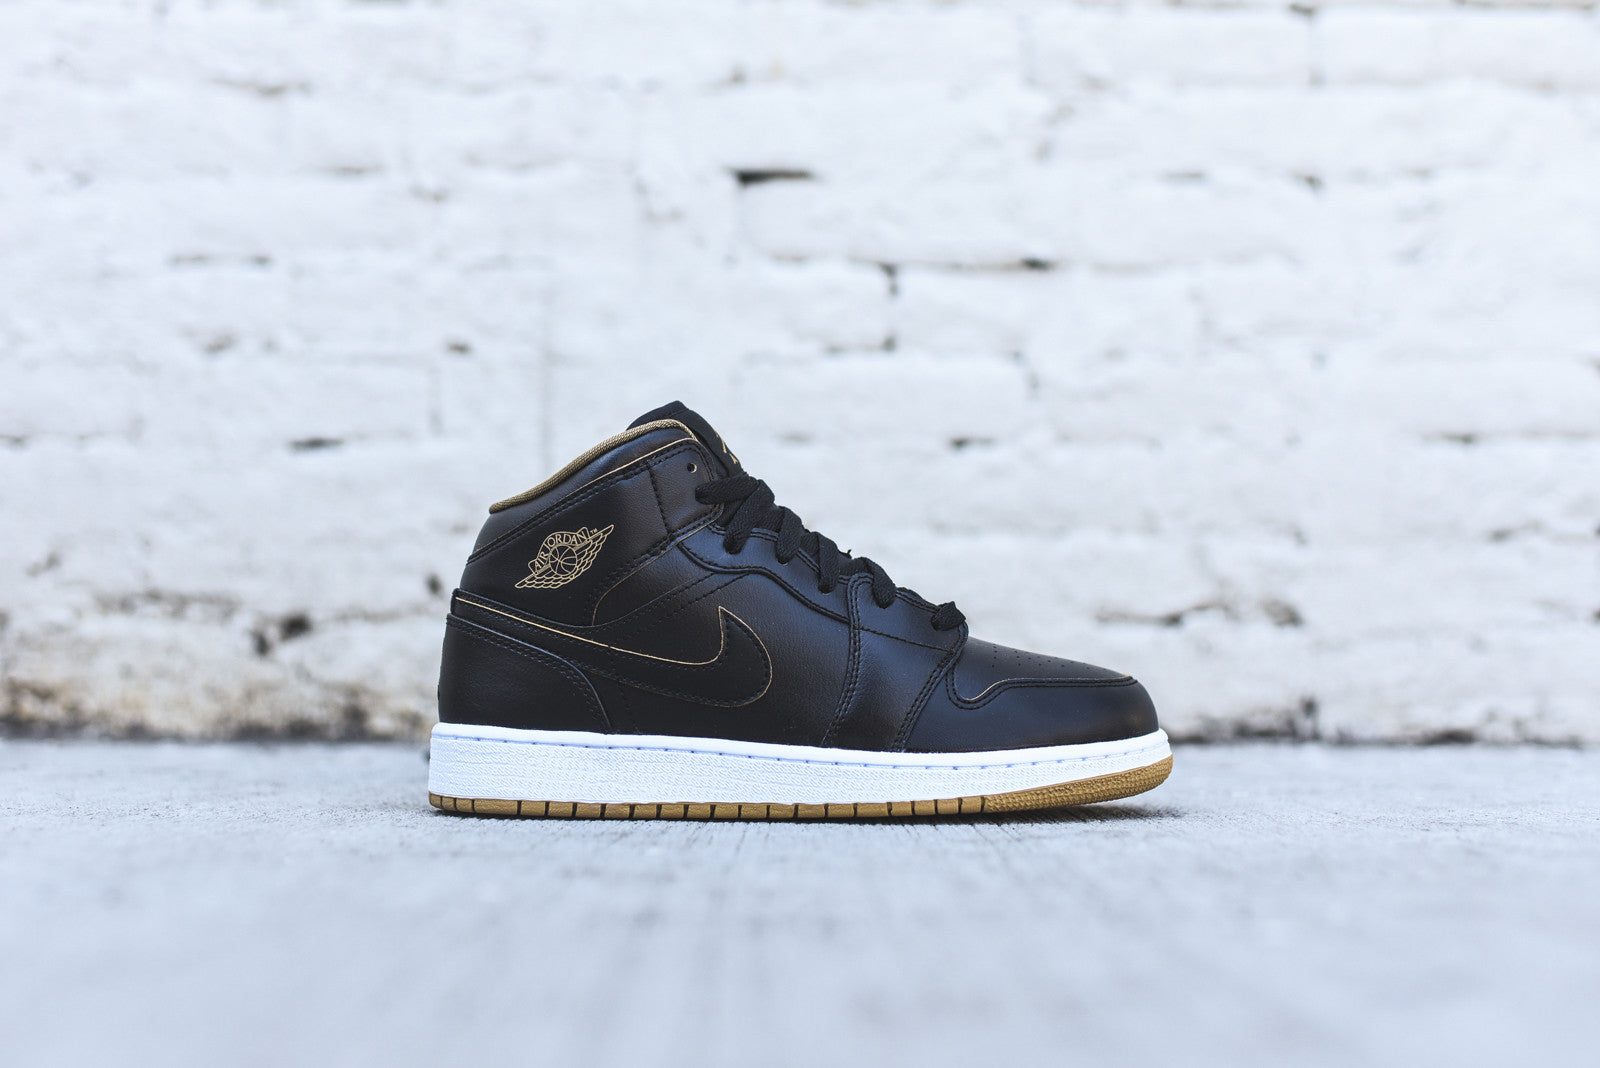 Nike Air Jordan 1 Mid GS - Black / Metallic Gold